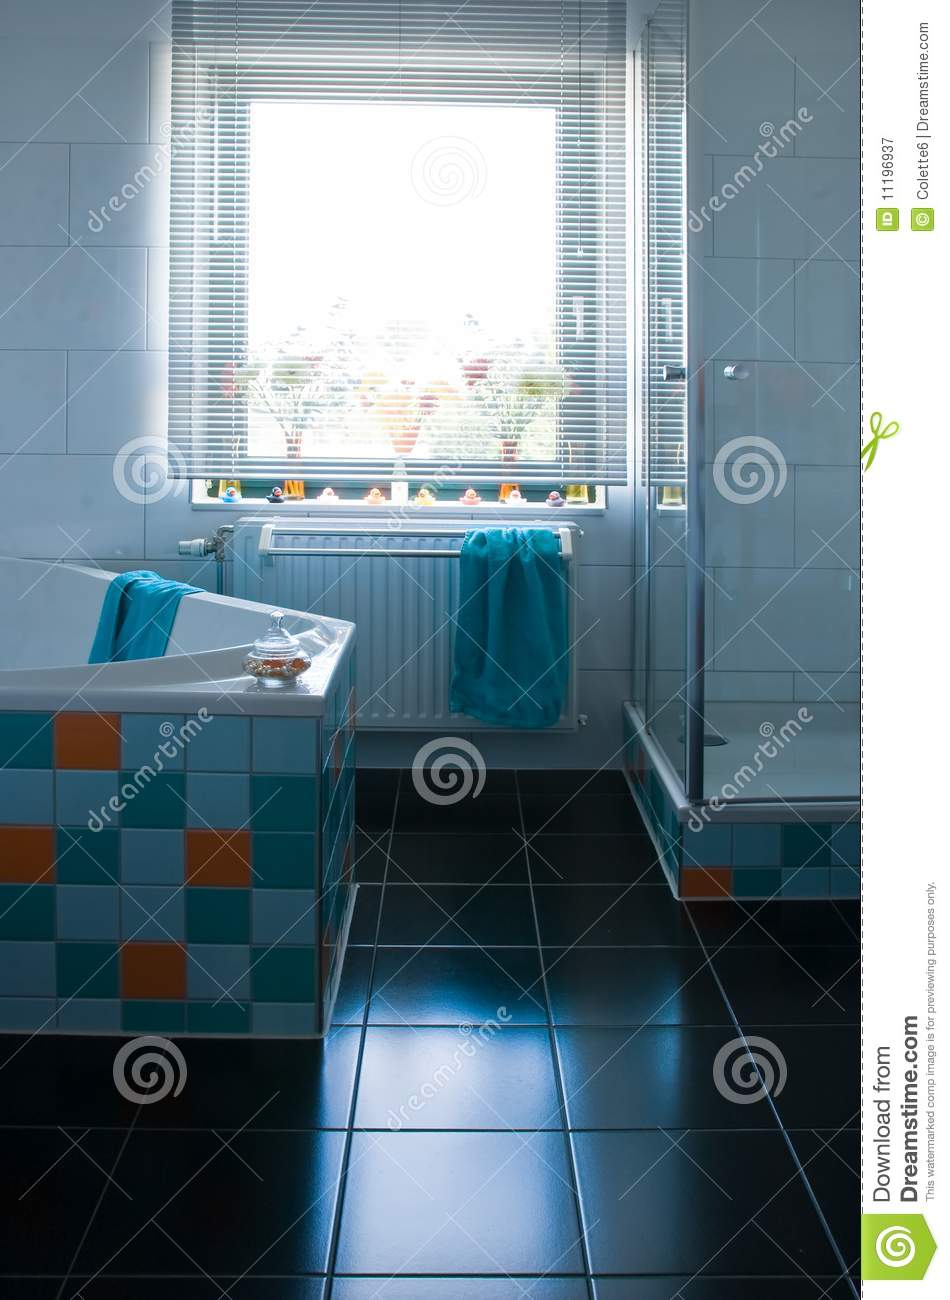 Colorful White Bathroom With Black Floor Stock Image - Image of ...